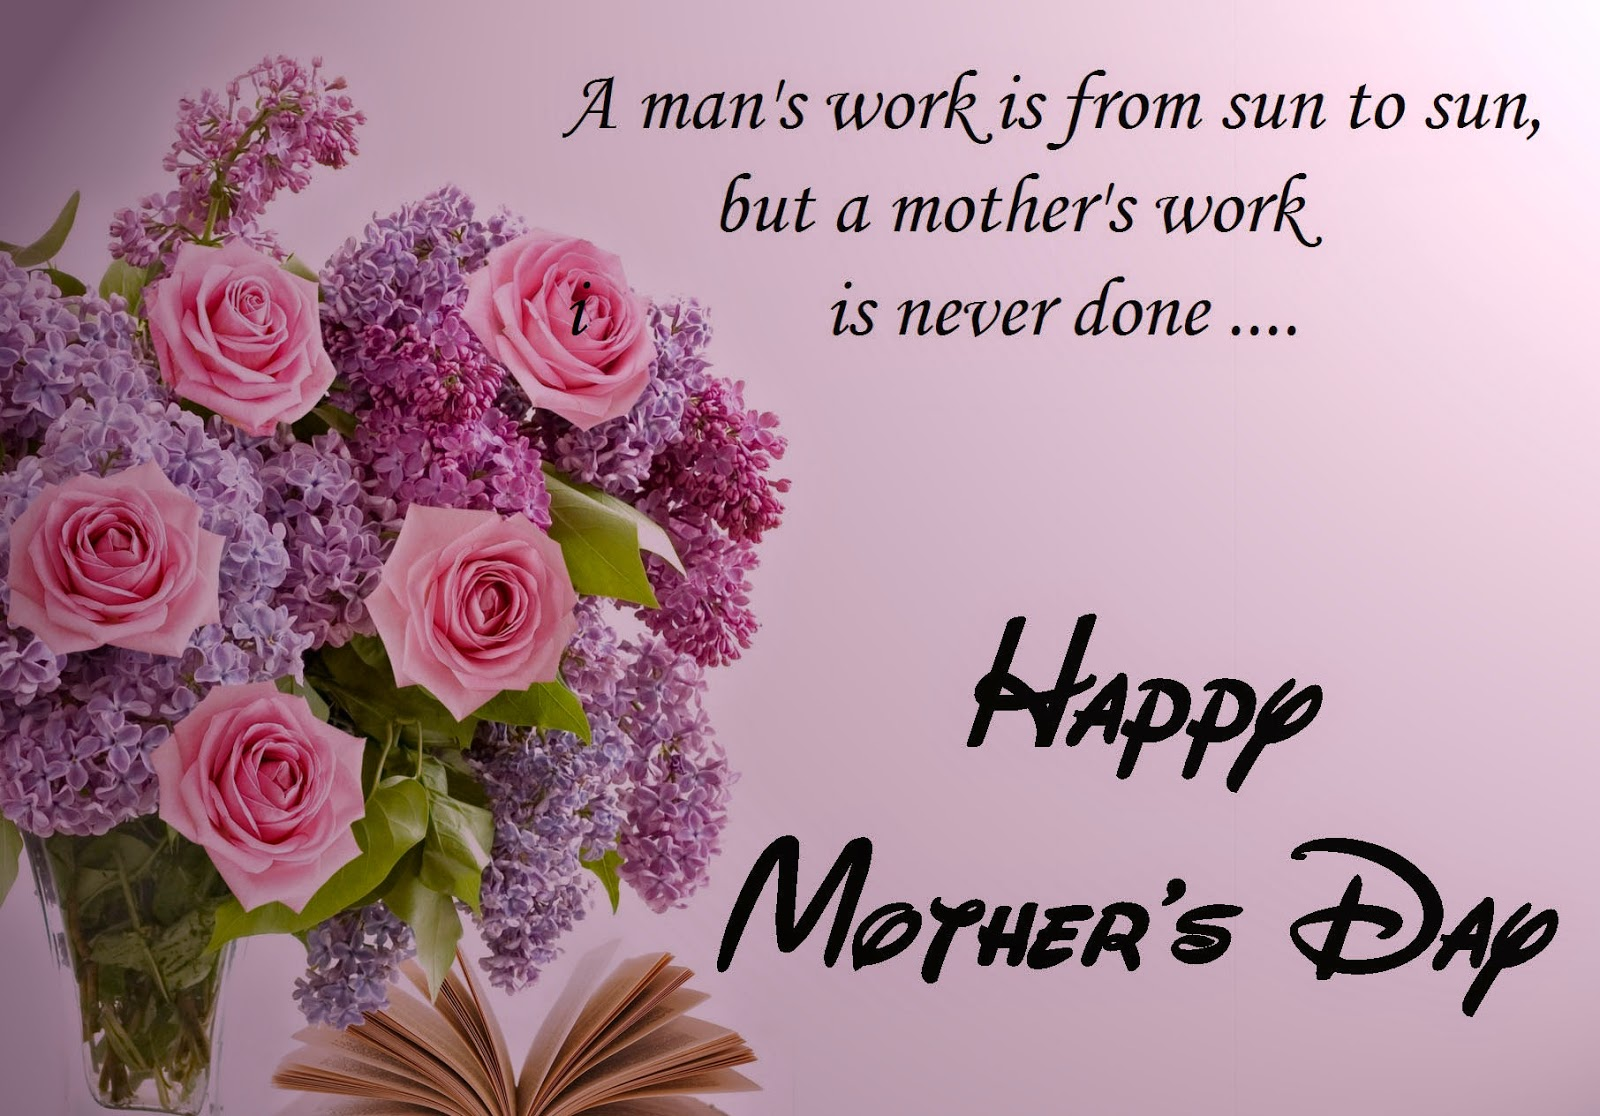 Mothers Day Memes For Whatsapp mother's day memes for whatsapp free hd images